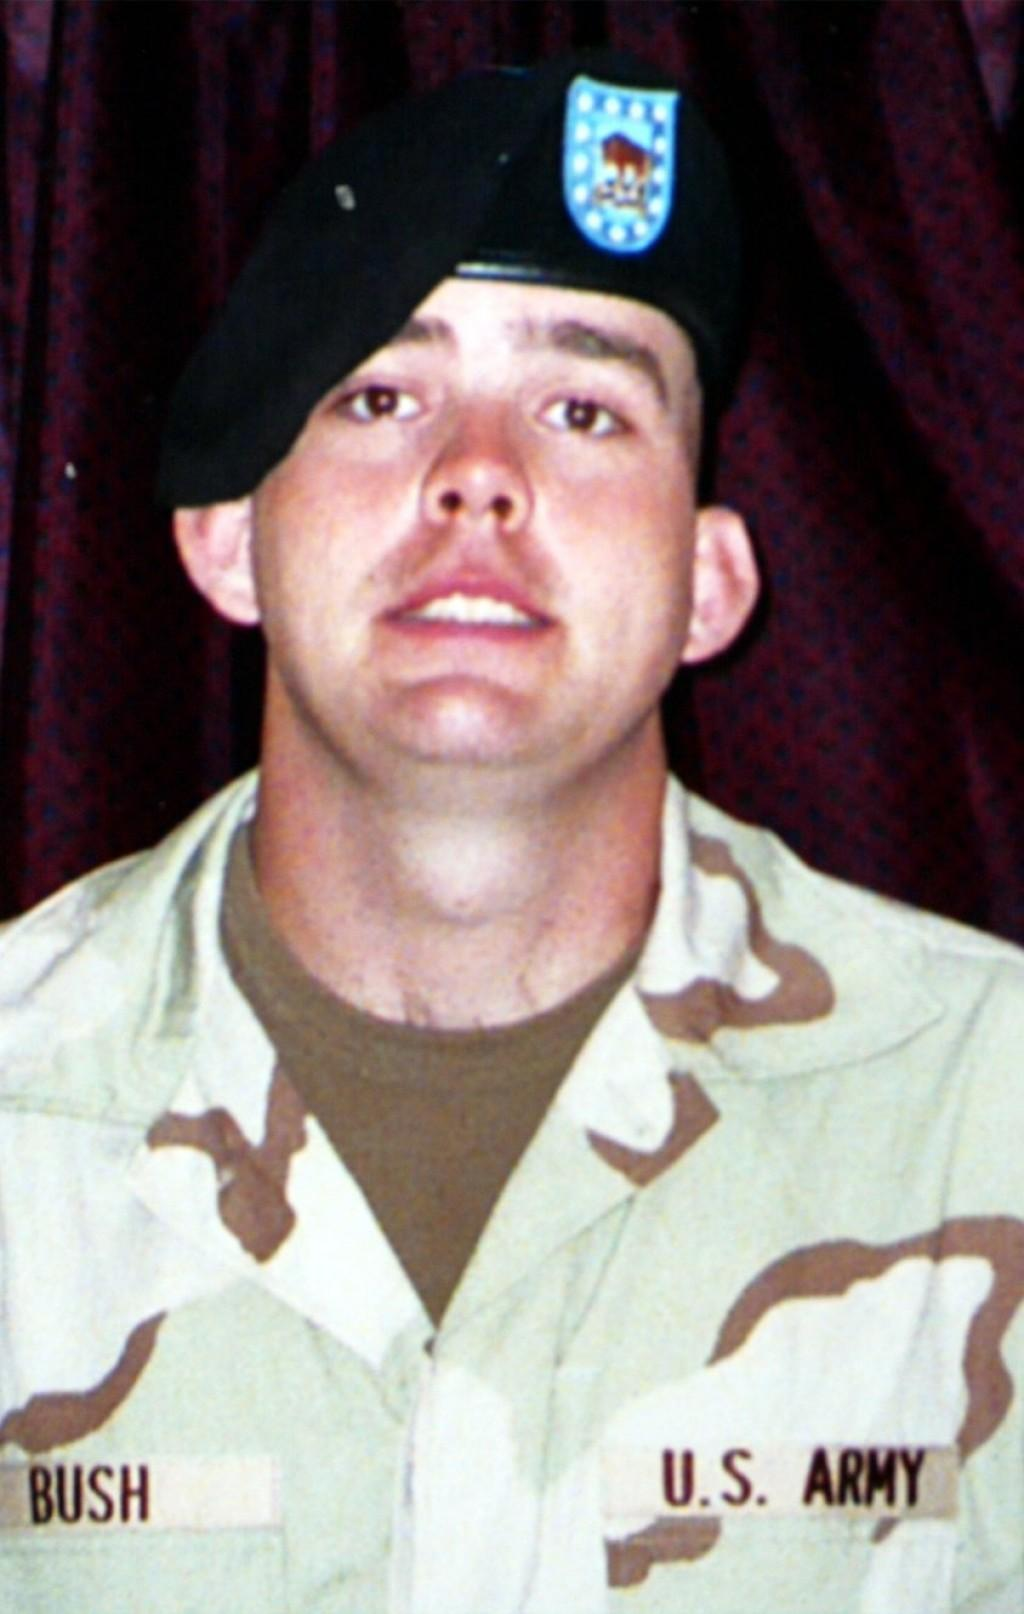 Soldier's unexplained death in Iraq stuns family